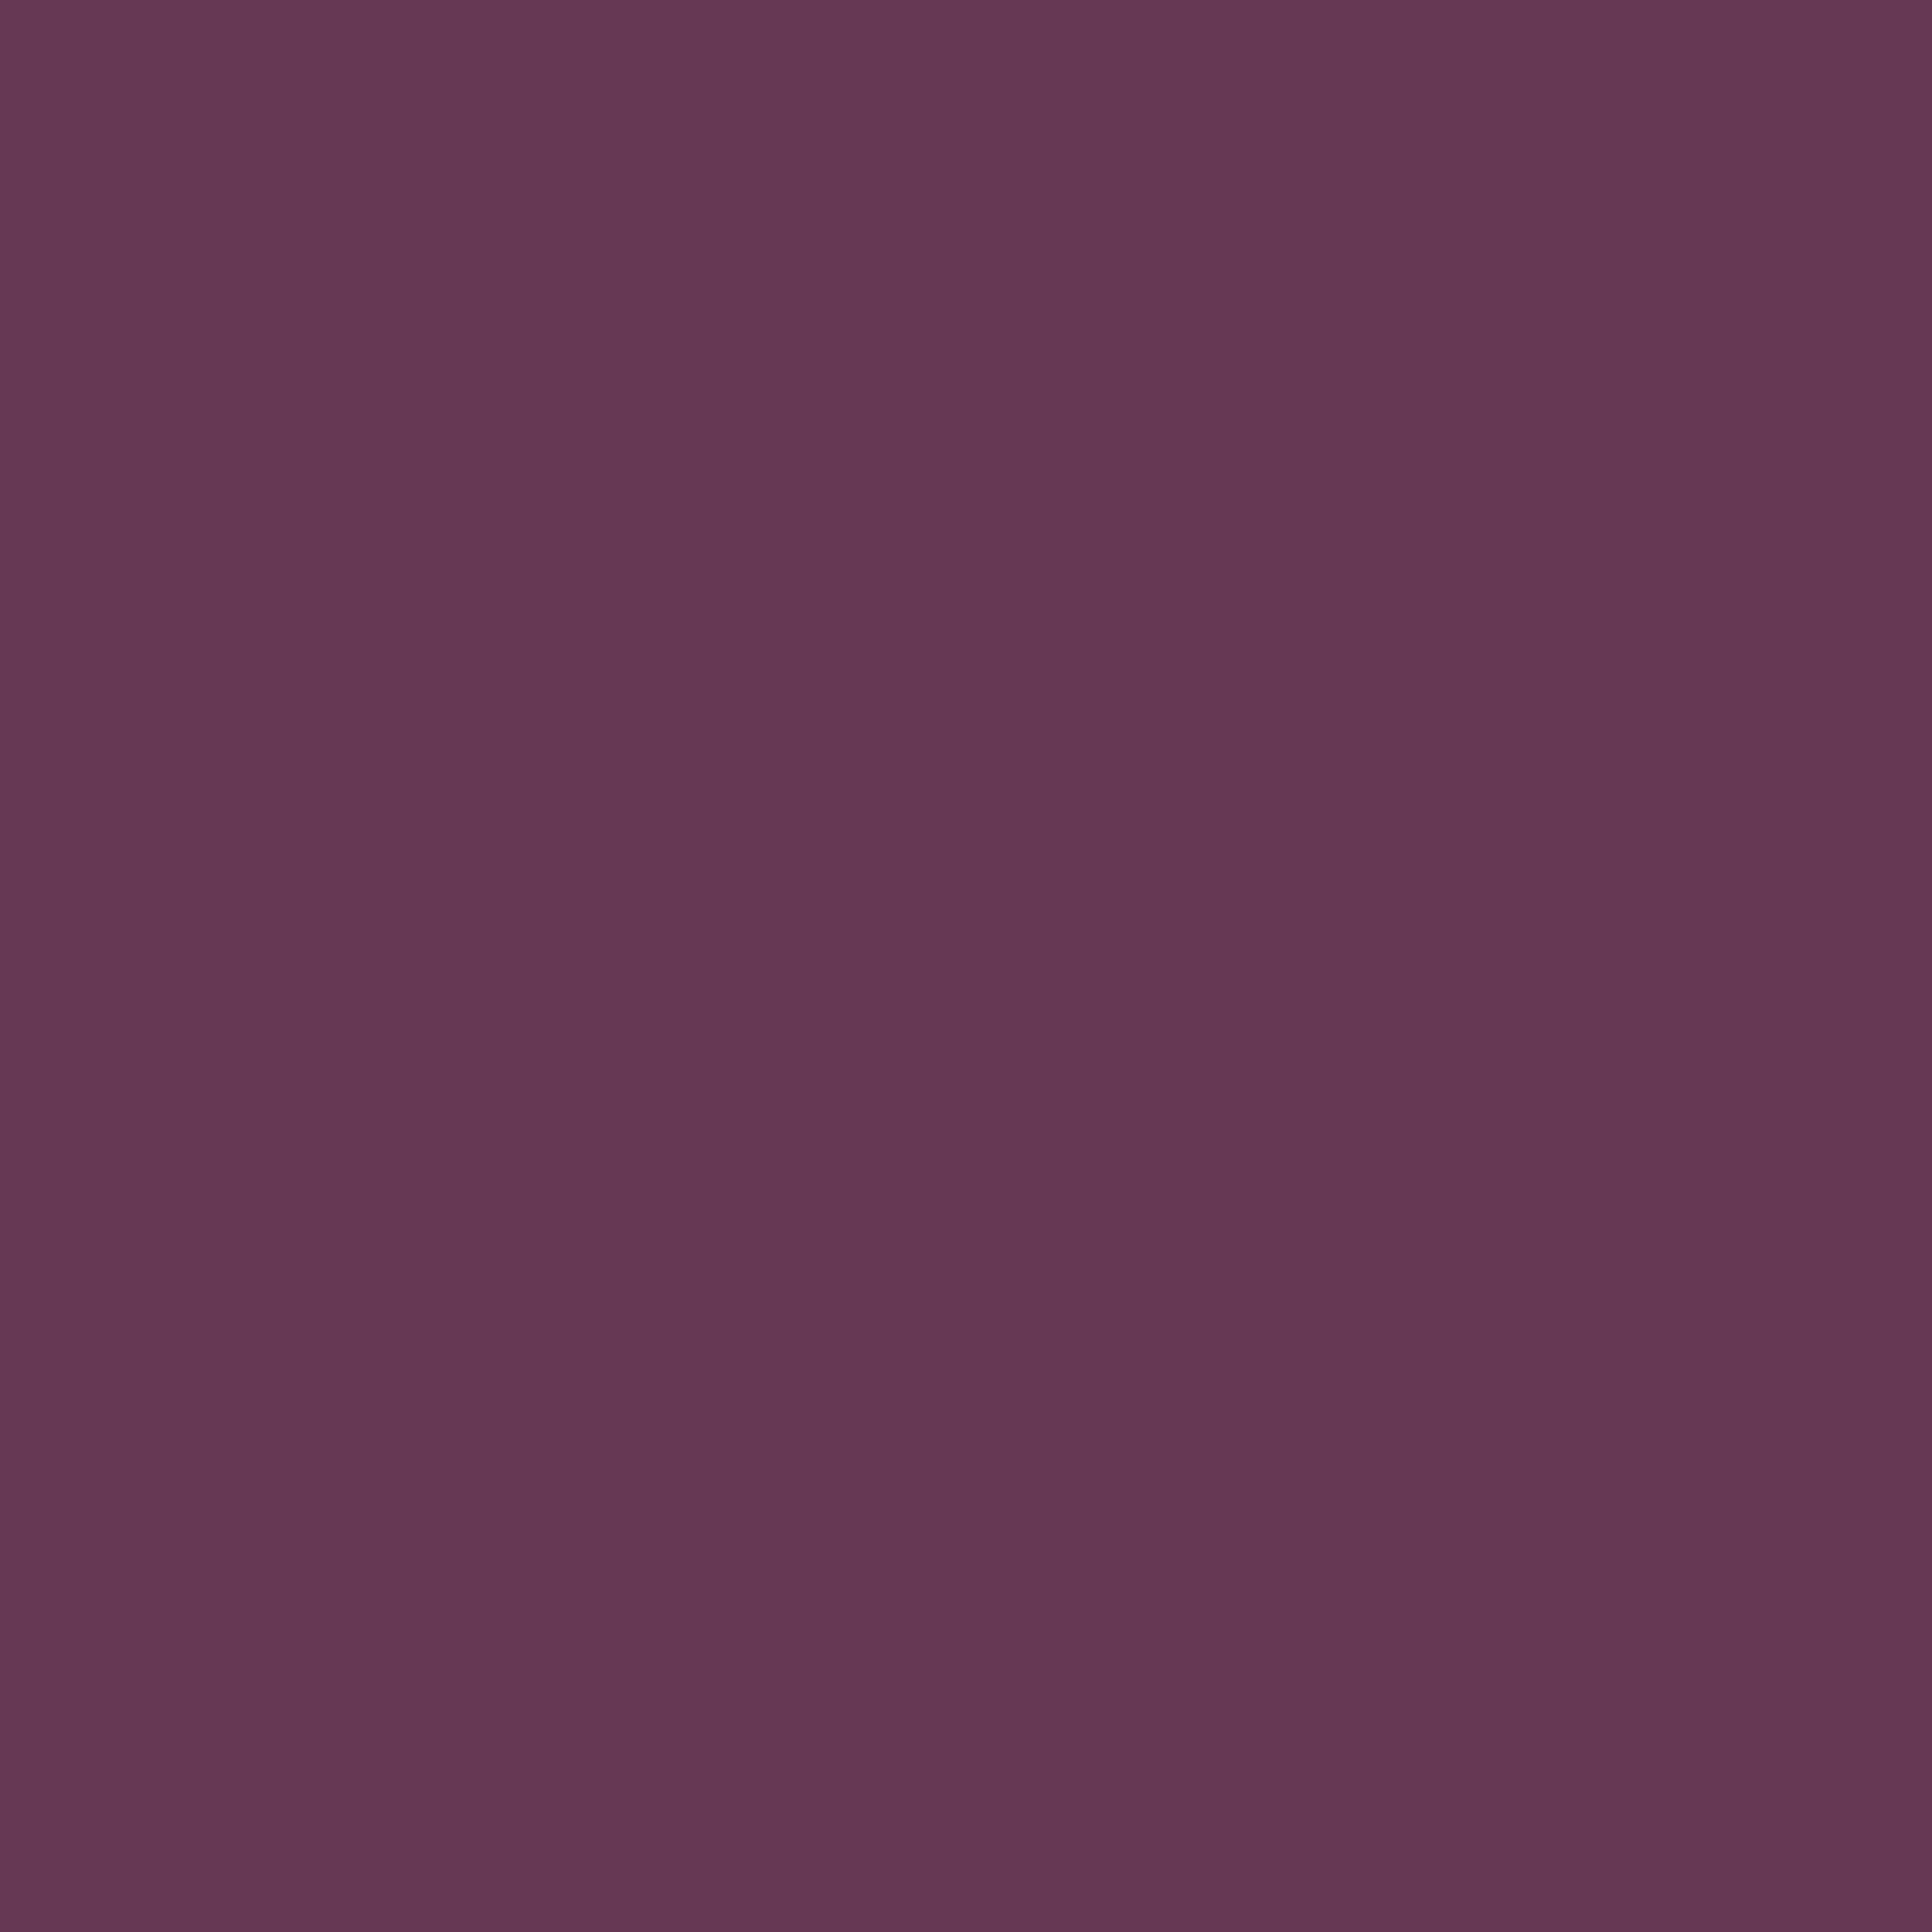 3600x3600 Halaya Ube Solid Color Background